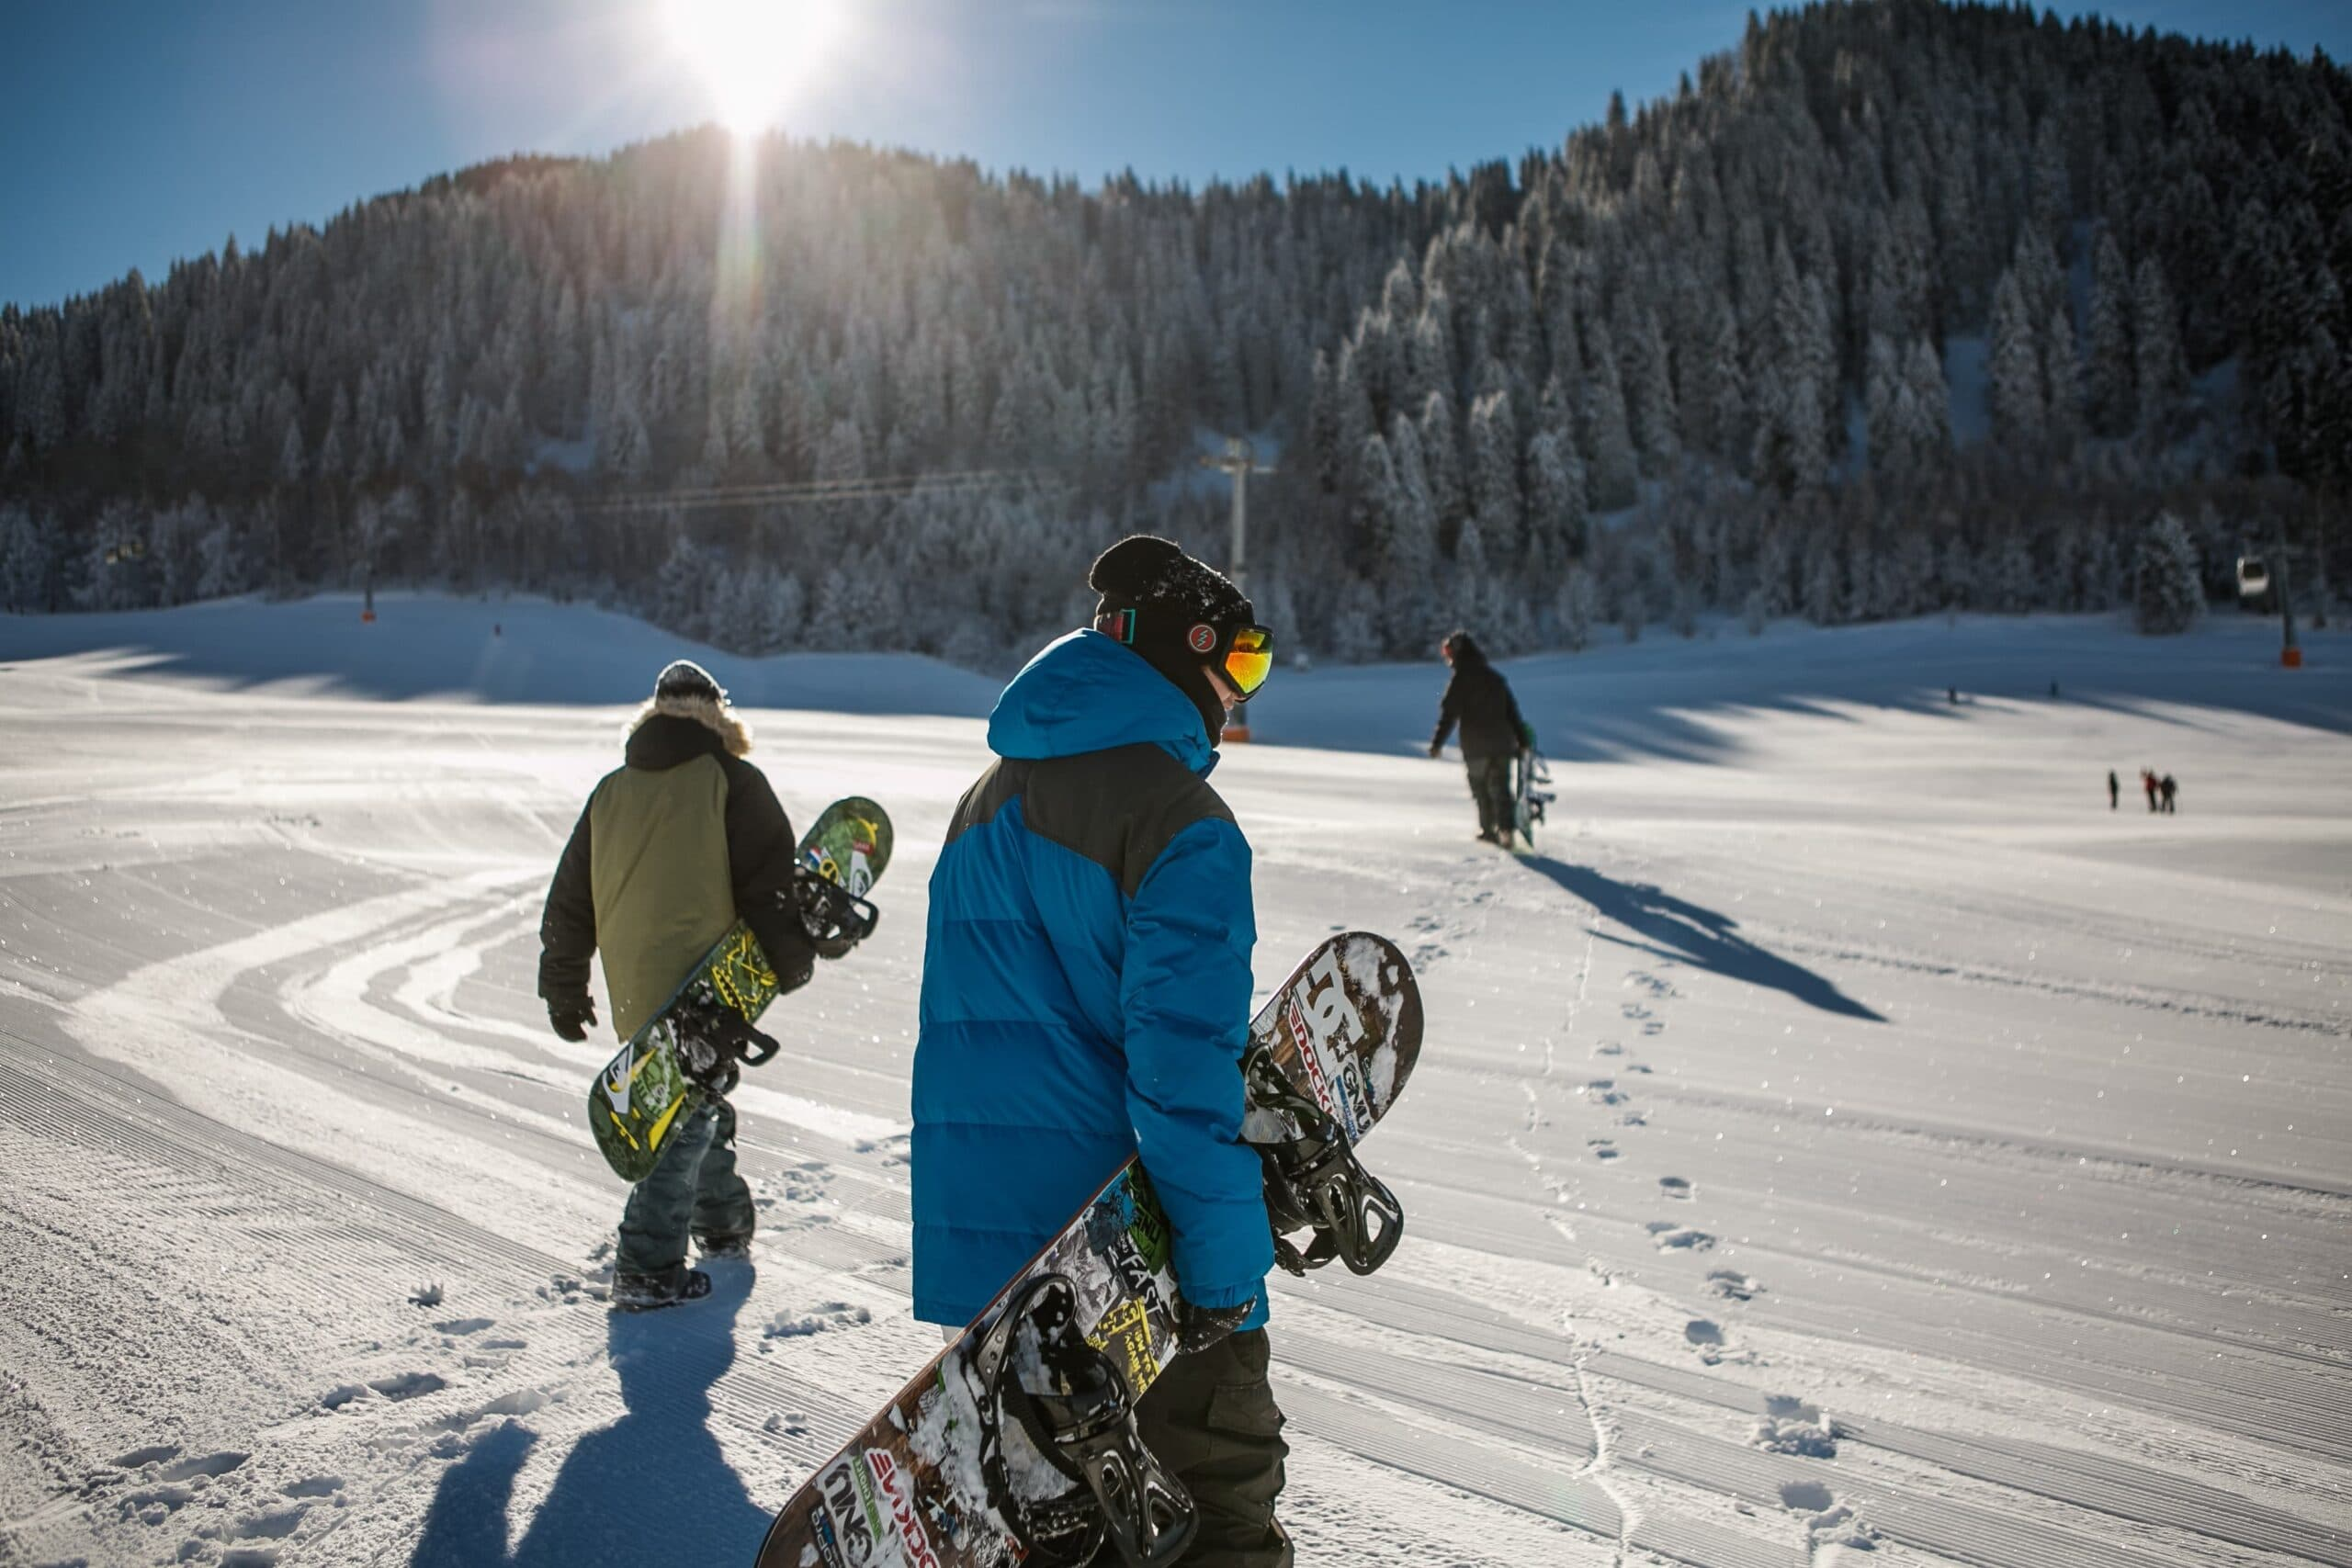 snowboarders prepare to hit the slopes scaled